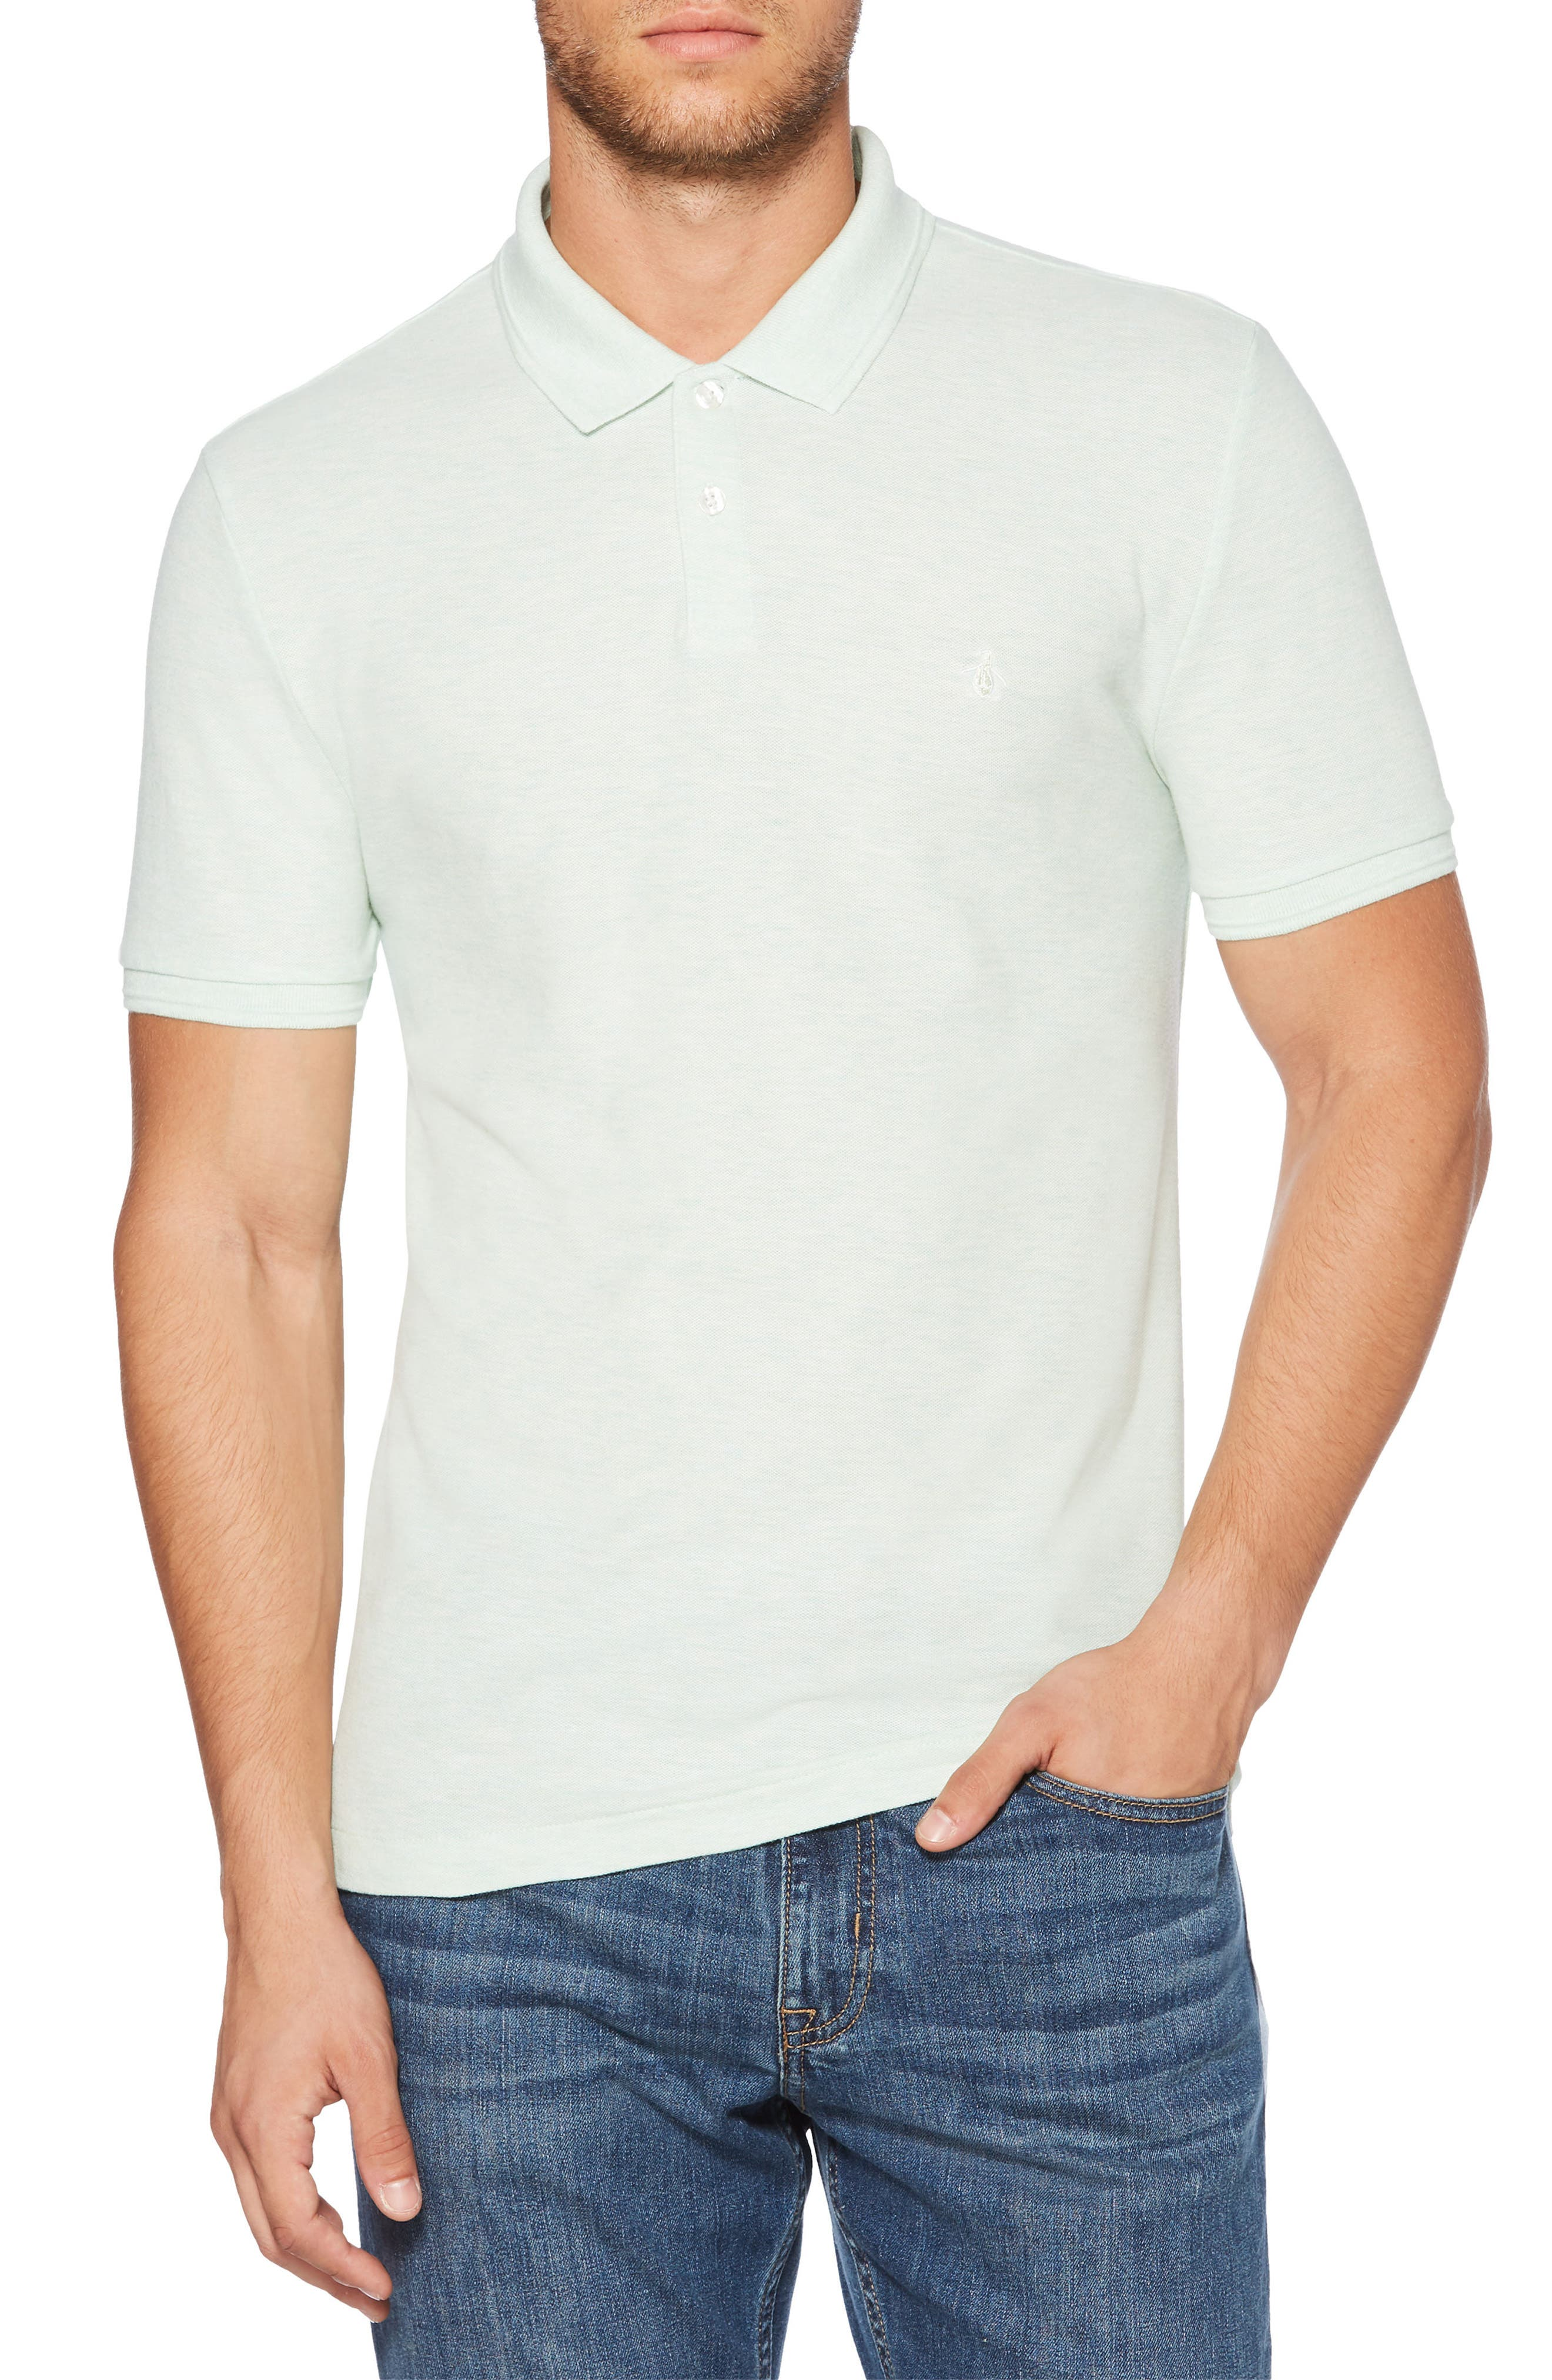 ORIGINAL PENGUIN,                             Daddy-O Piqué Polo,                             Main thumbnail 1, color,                             334